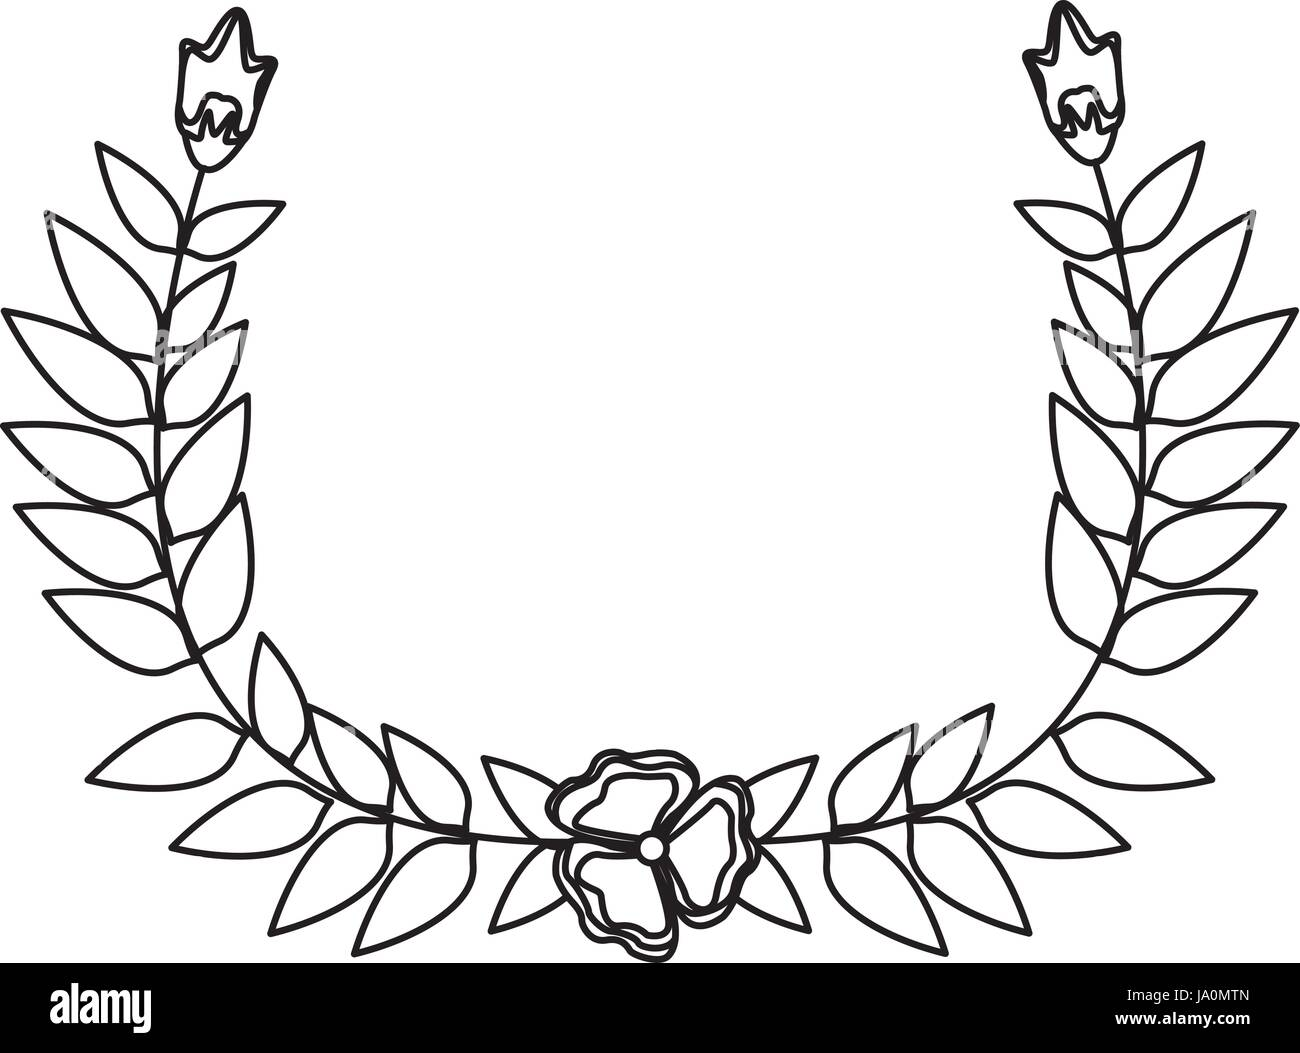 Drawing Crown Half Flower Natural Decoration Laurel Leaves